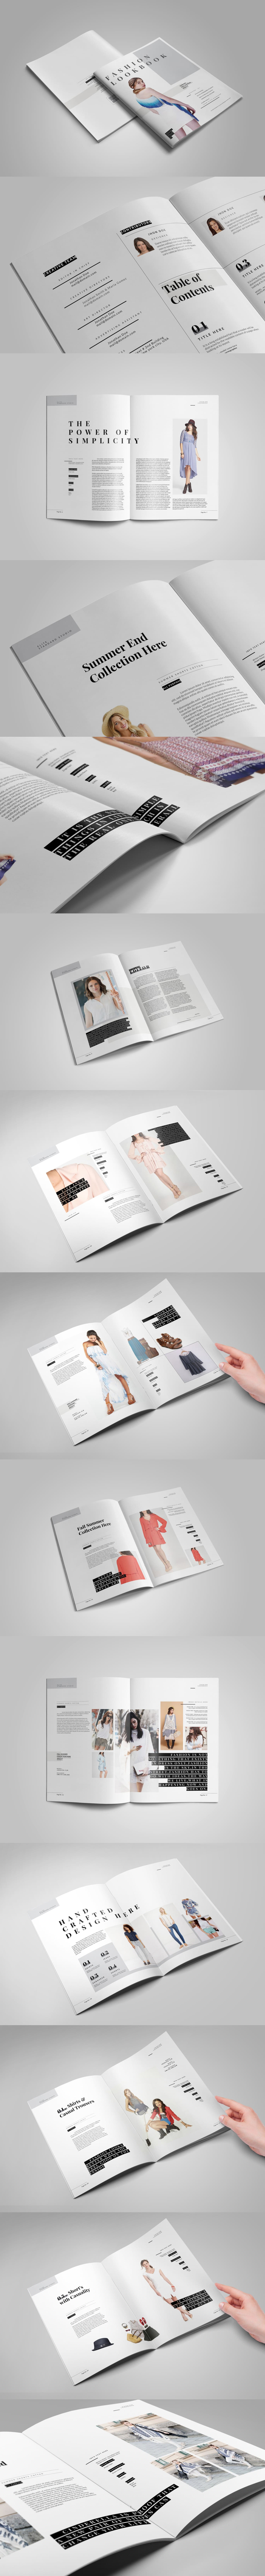 Fashion Look-book Template InDesign INDD - 32 Pages | Lookbook ...